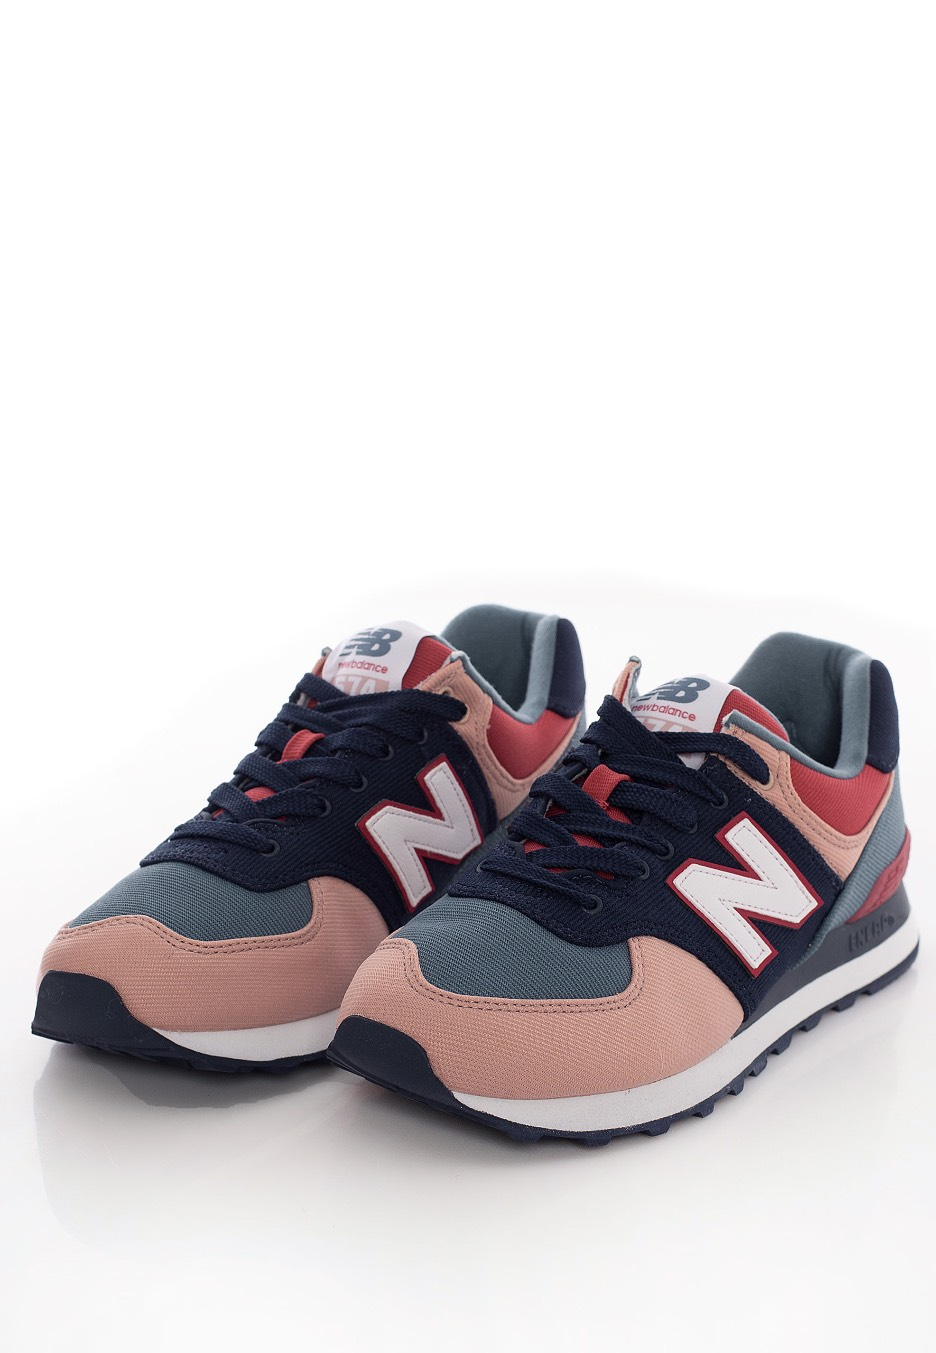 newest 47aa2 43520 newbalance wl574ina lightpetrol girlshoes side lg 1.jpg